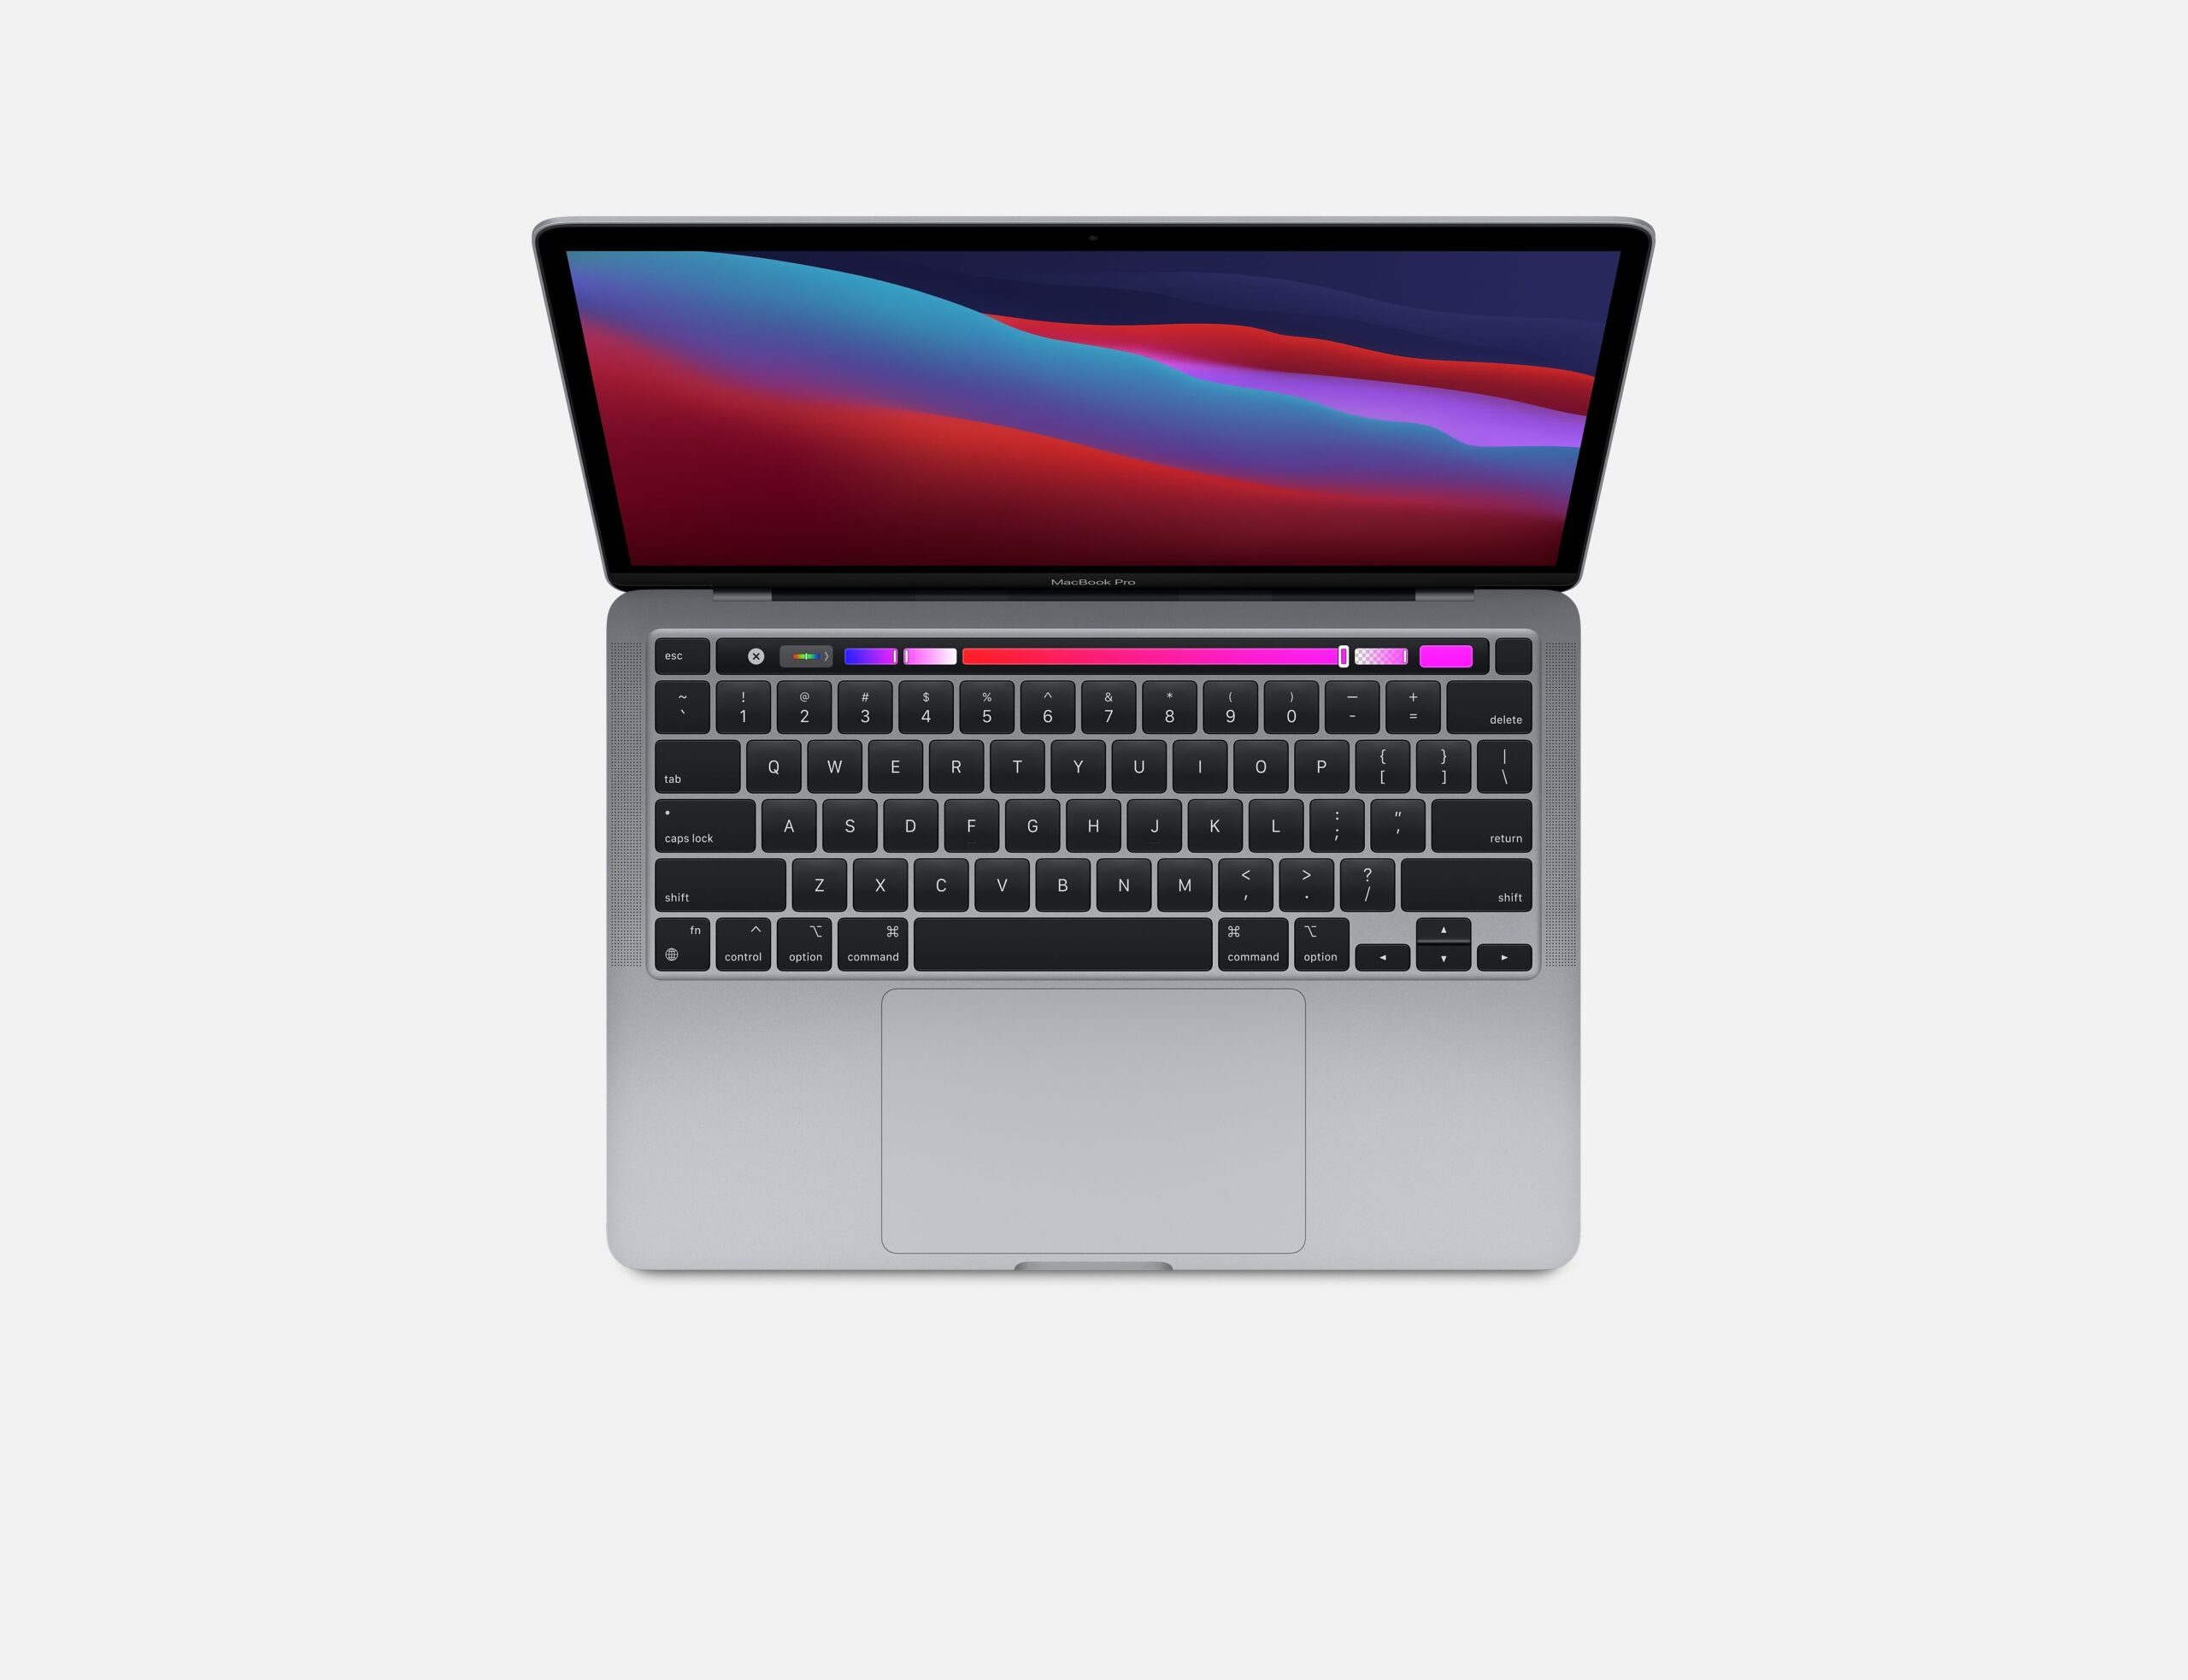 MacBook Pro 1 inch 1 - Retina Display - Touch Bar - Apple M1 Chip with  1-Core CPU and 1-Core GPU 1GB Storage